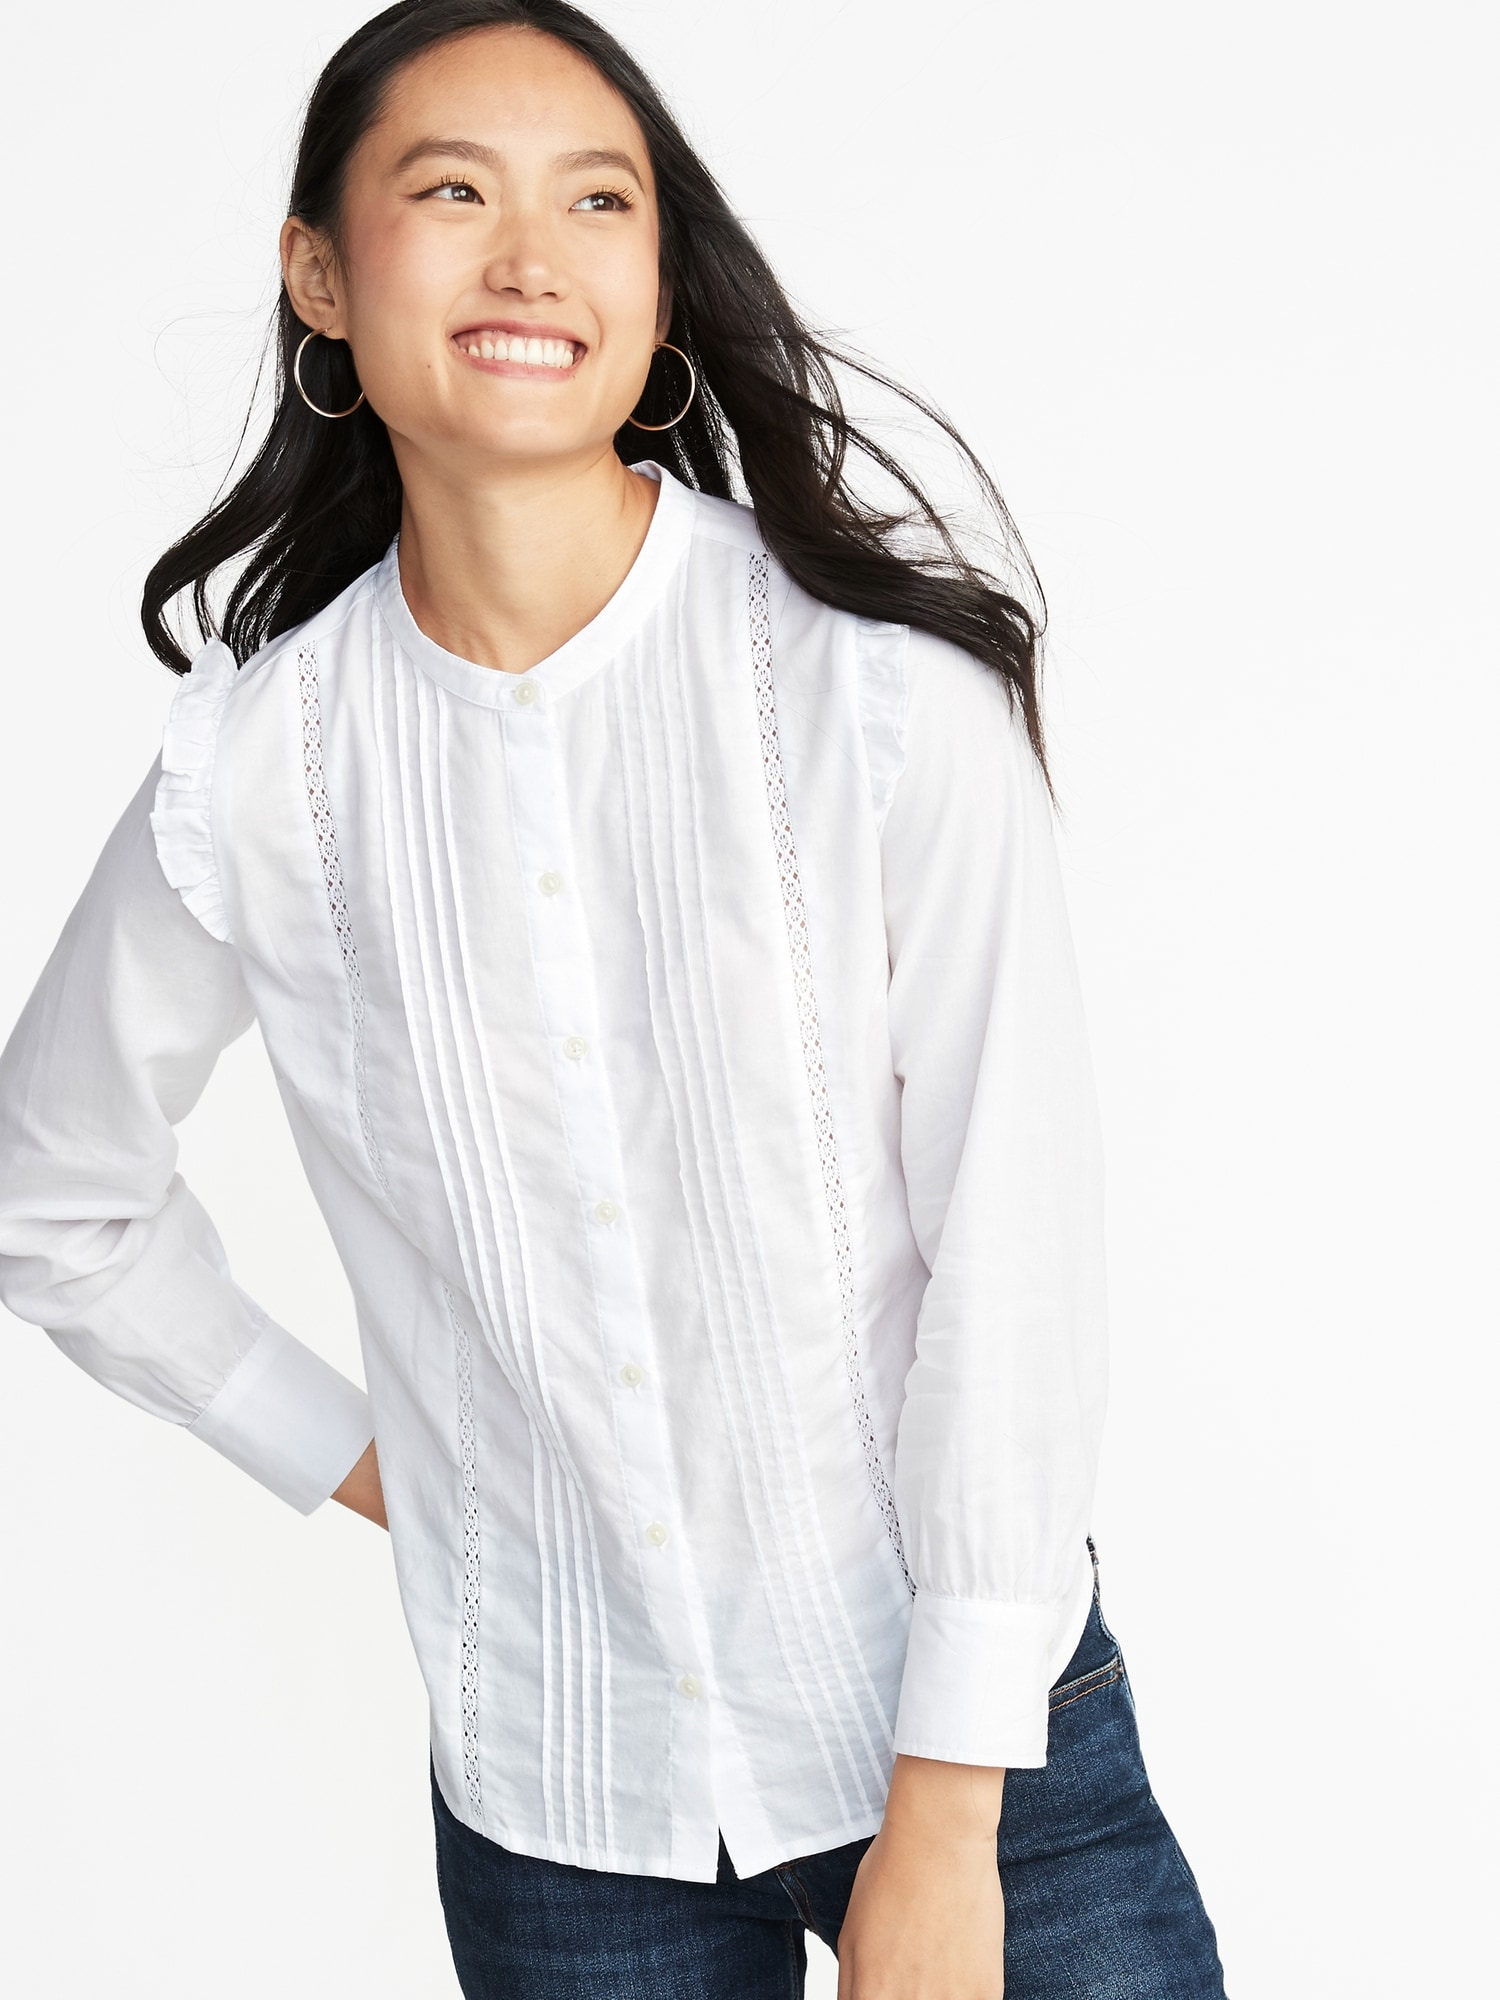 Ruffled Shoulder Lace Trim Shirt For Women Old Navy